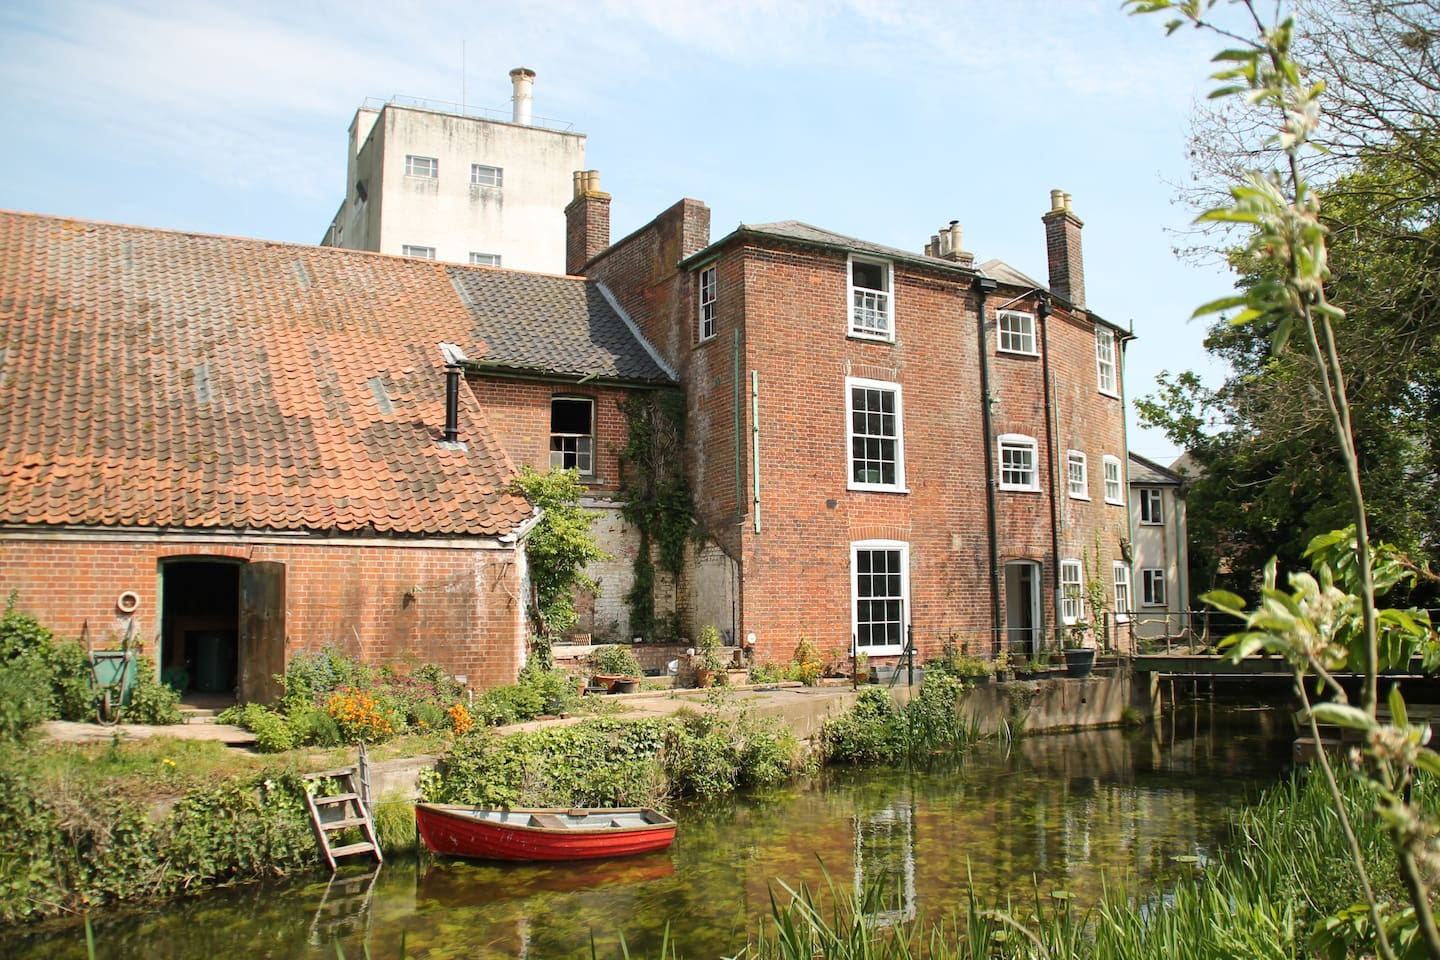 South-facing, right next to the River Waveney, with footbridge to garden.